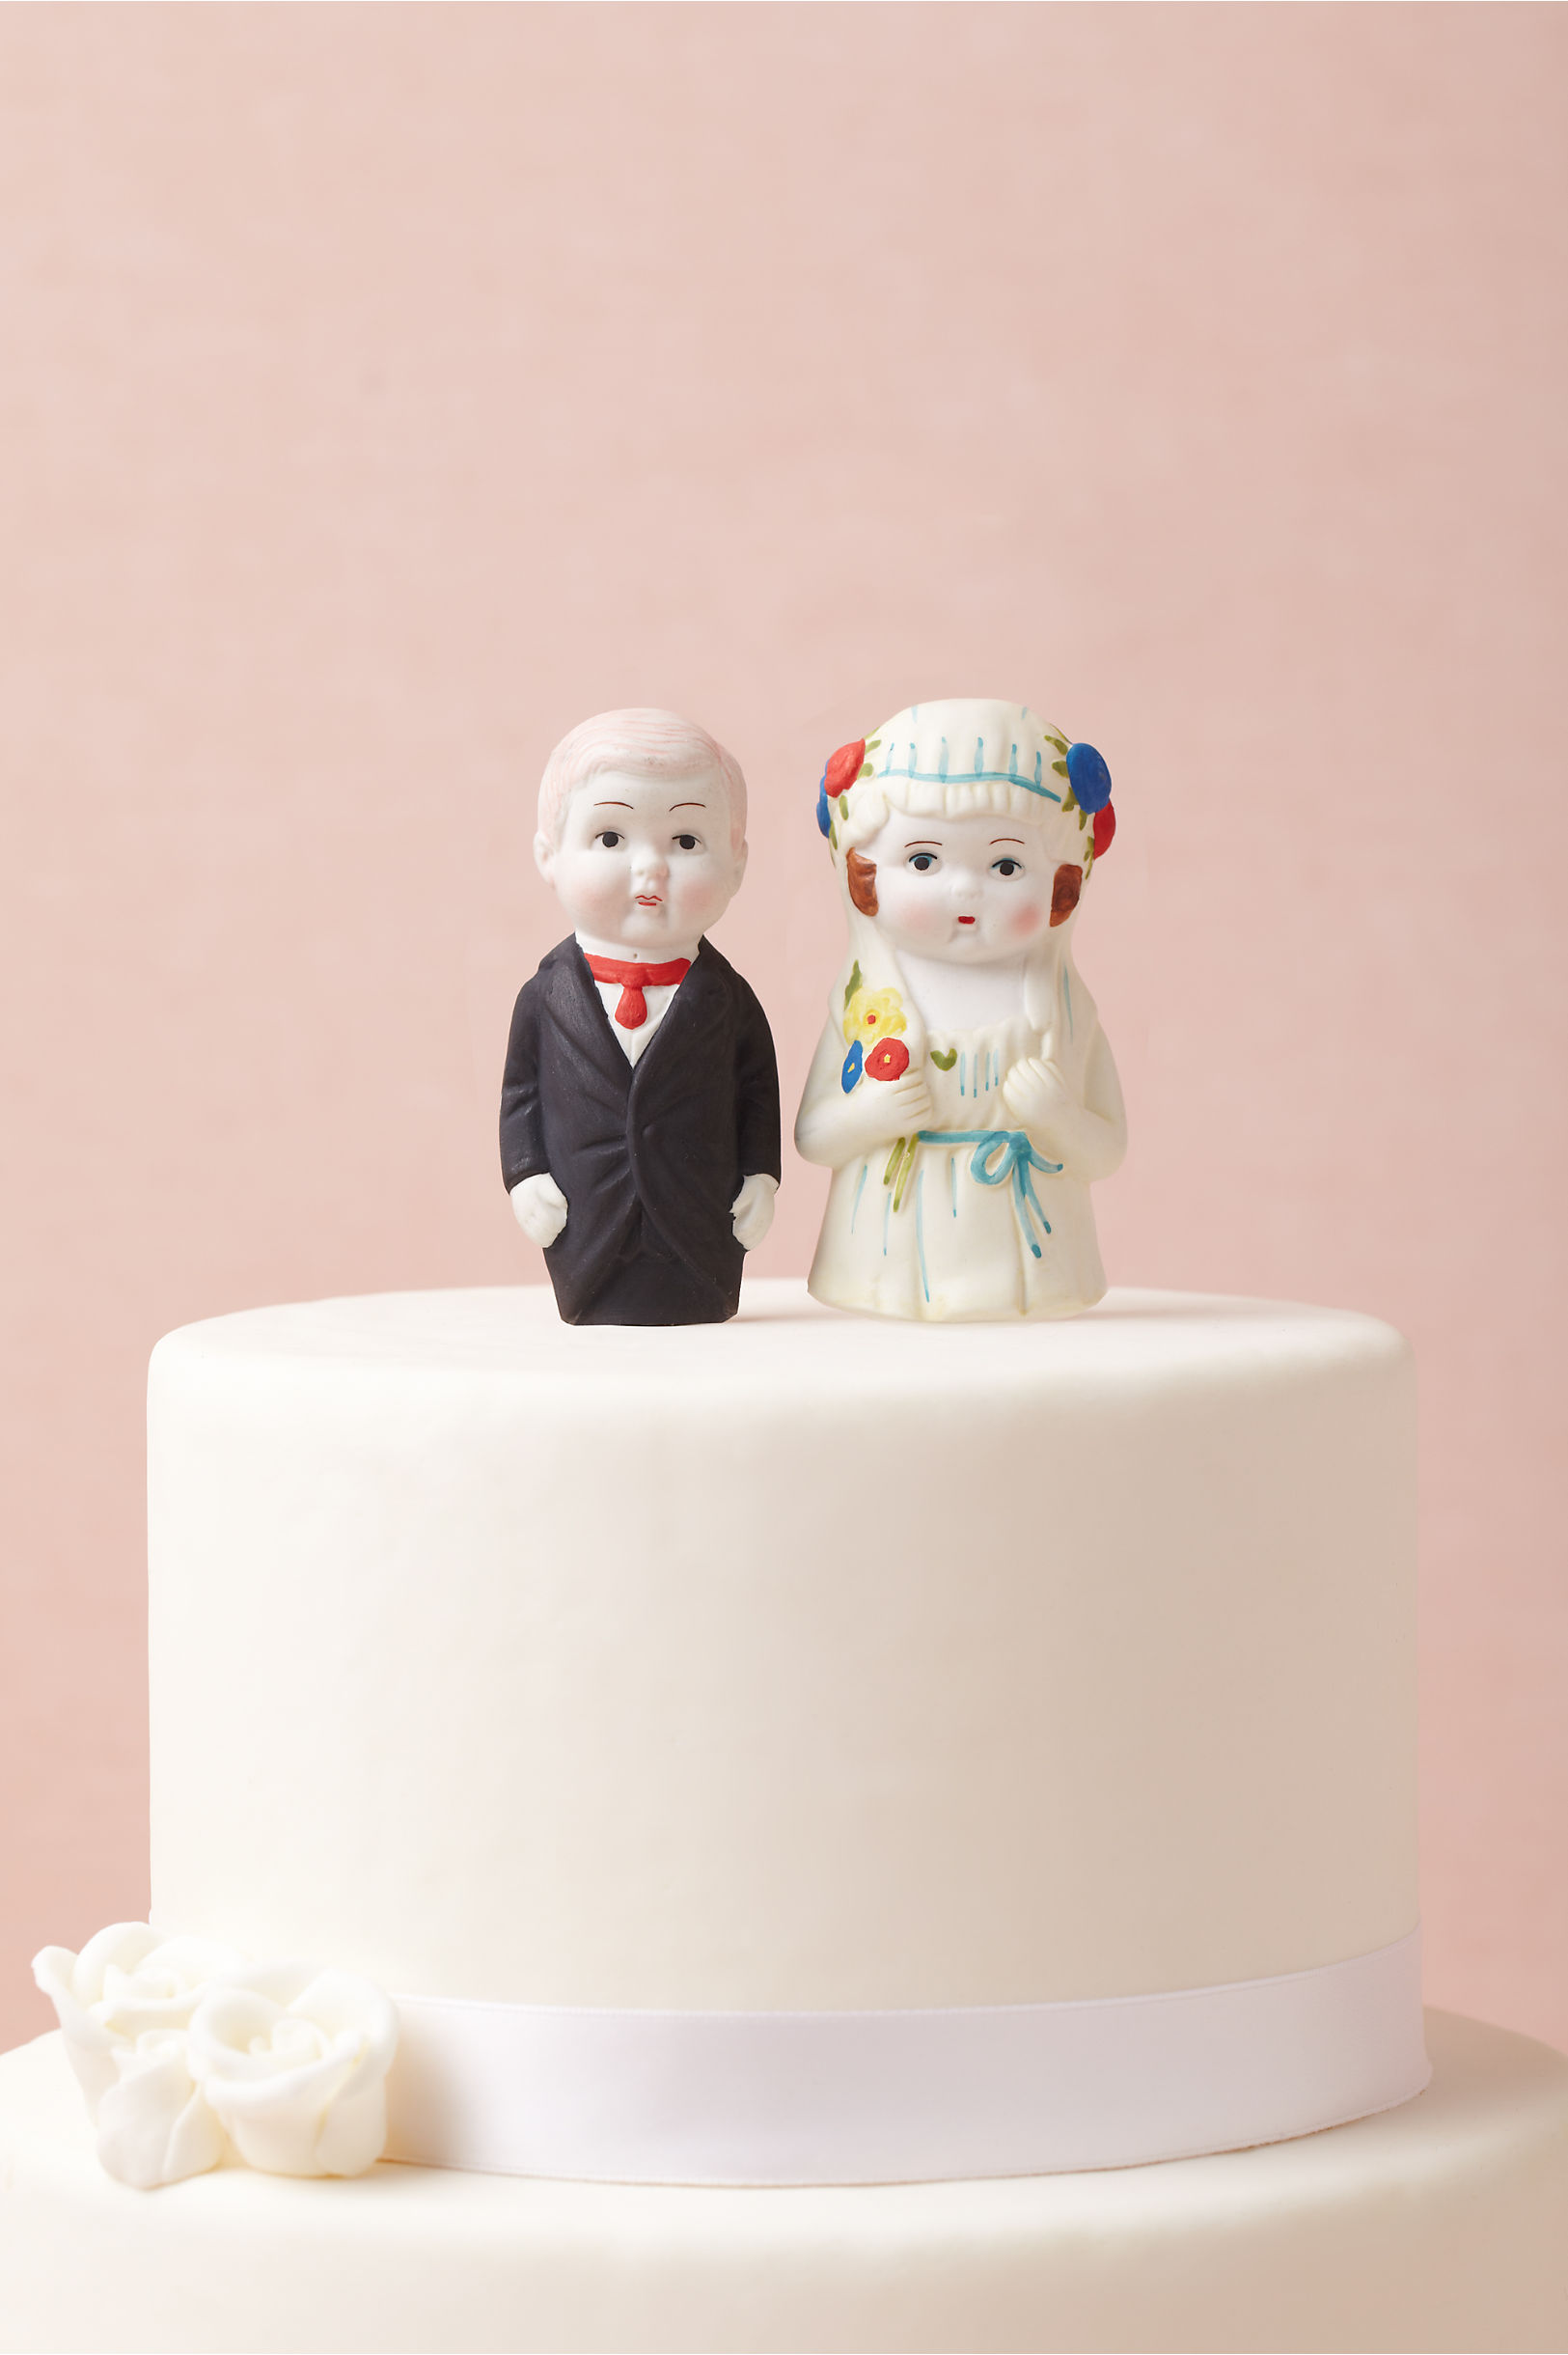 Newlyweds Cake Topper in Sale | BHLDN